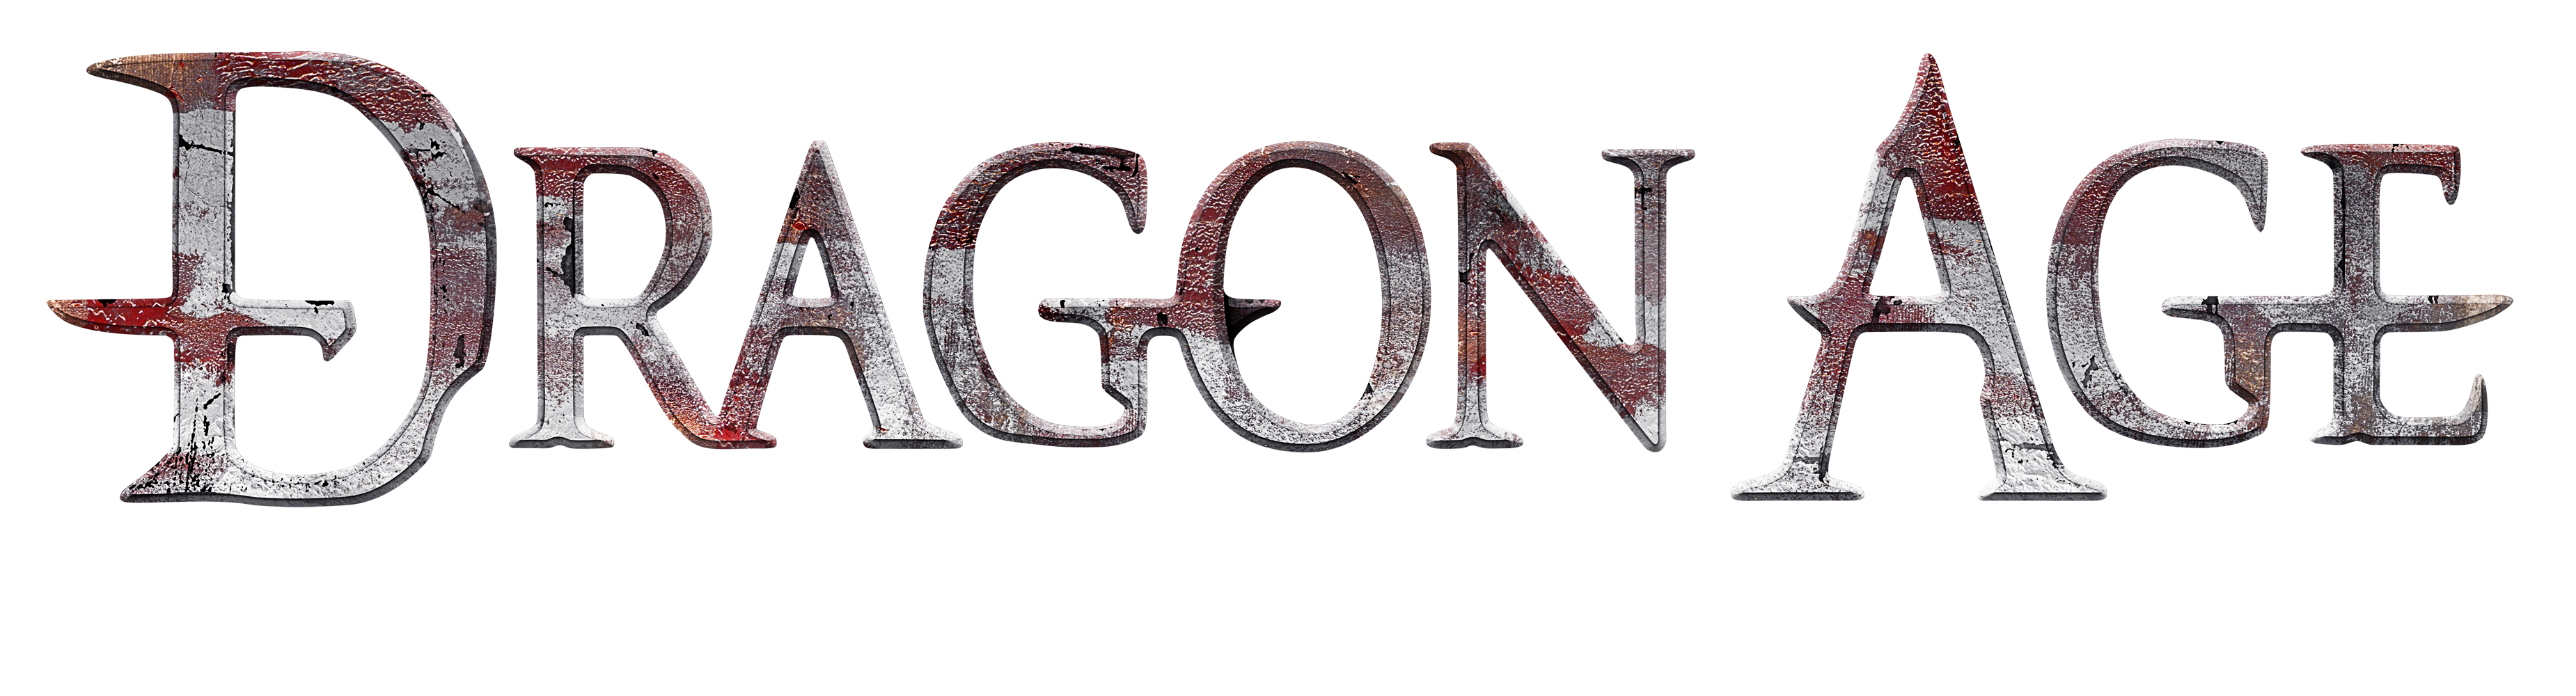 Dragon age 2 logo png. Series review mgl since